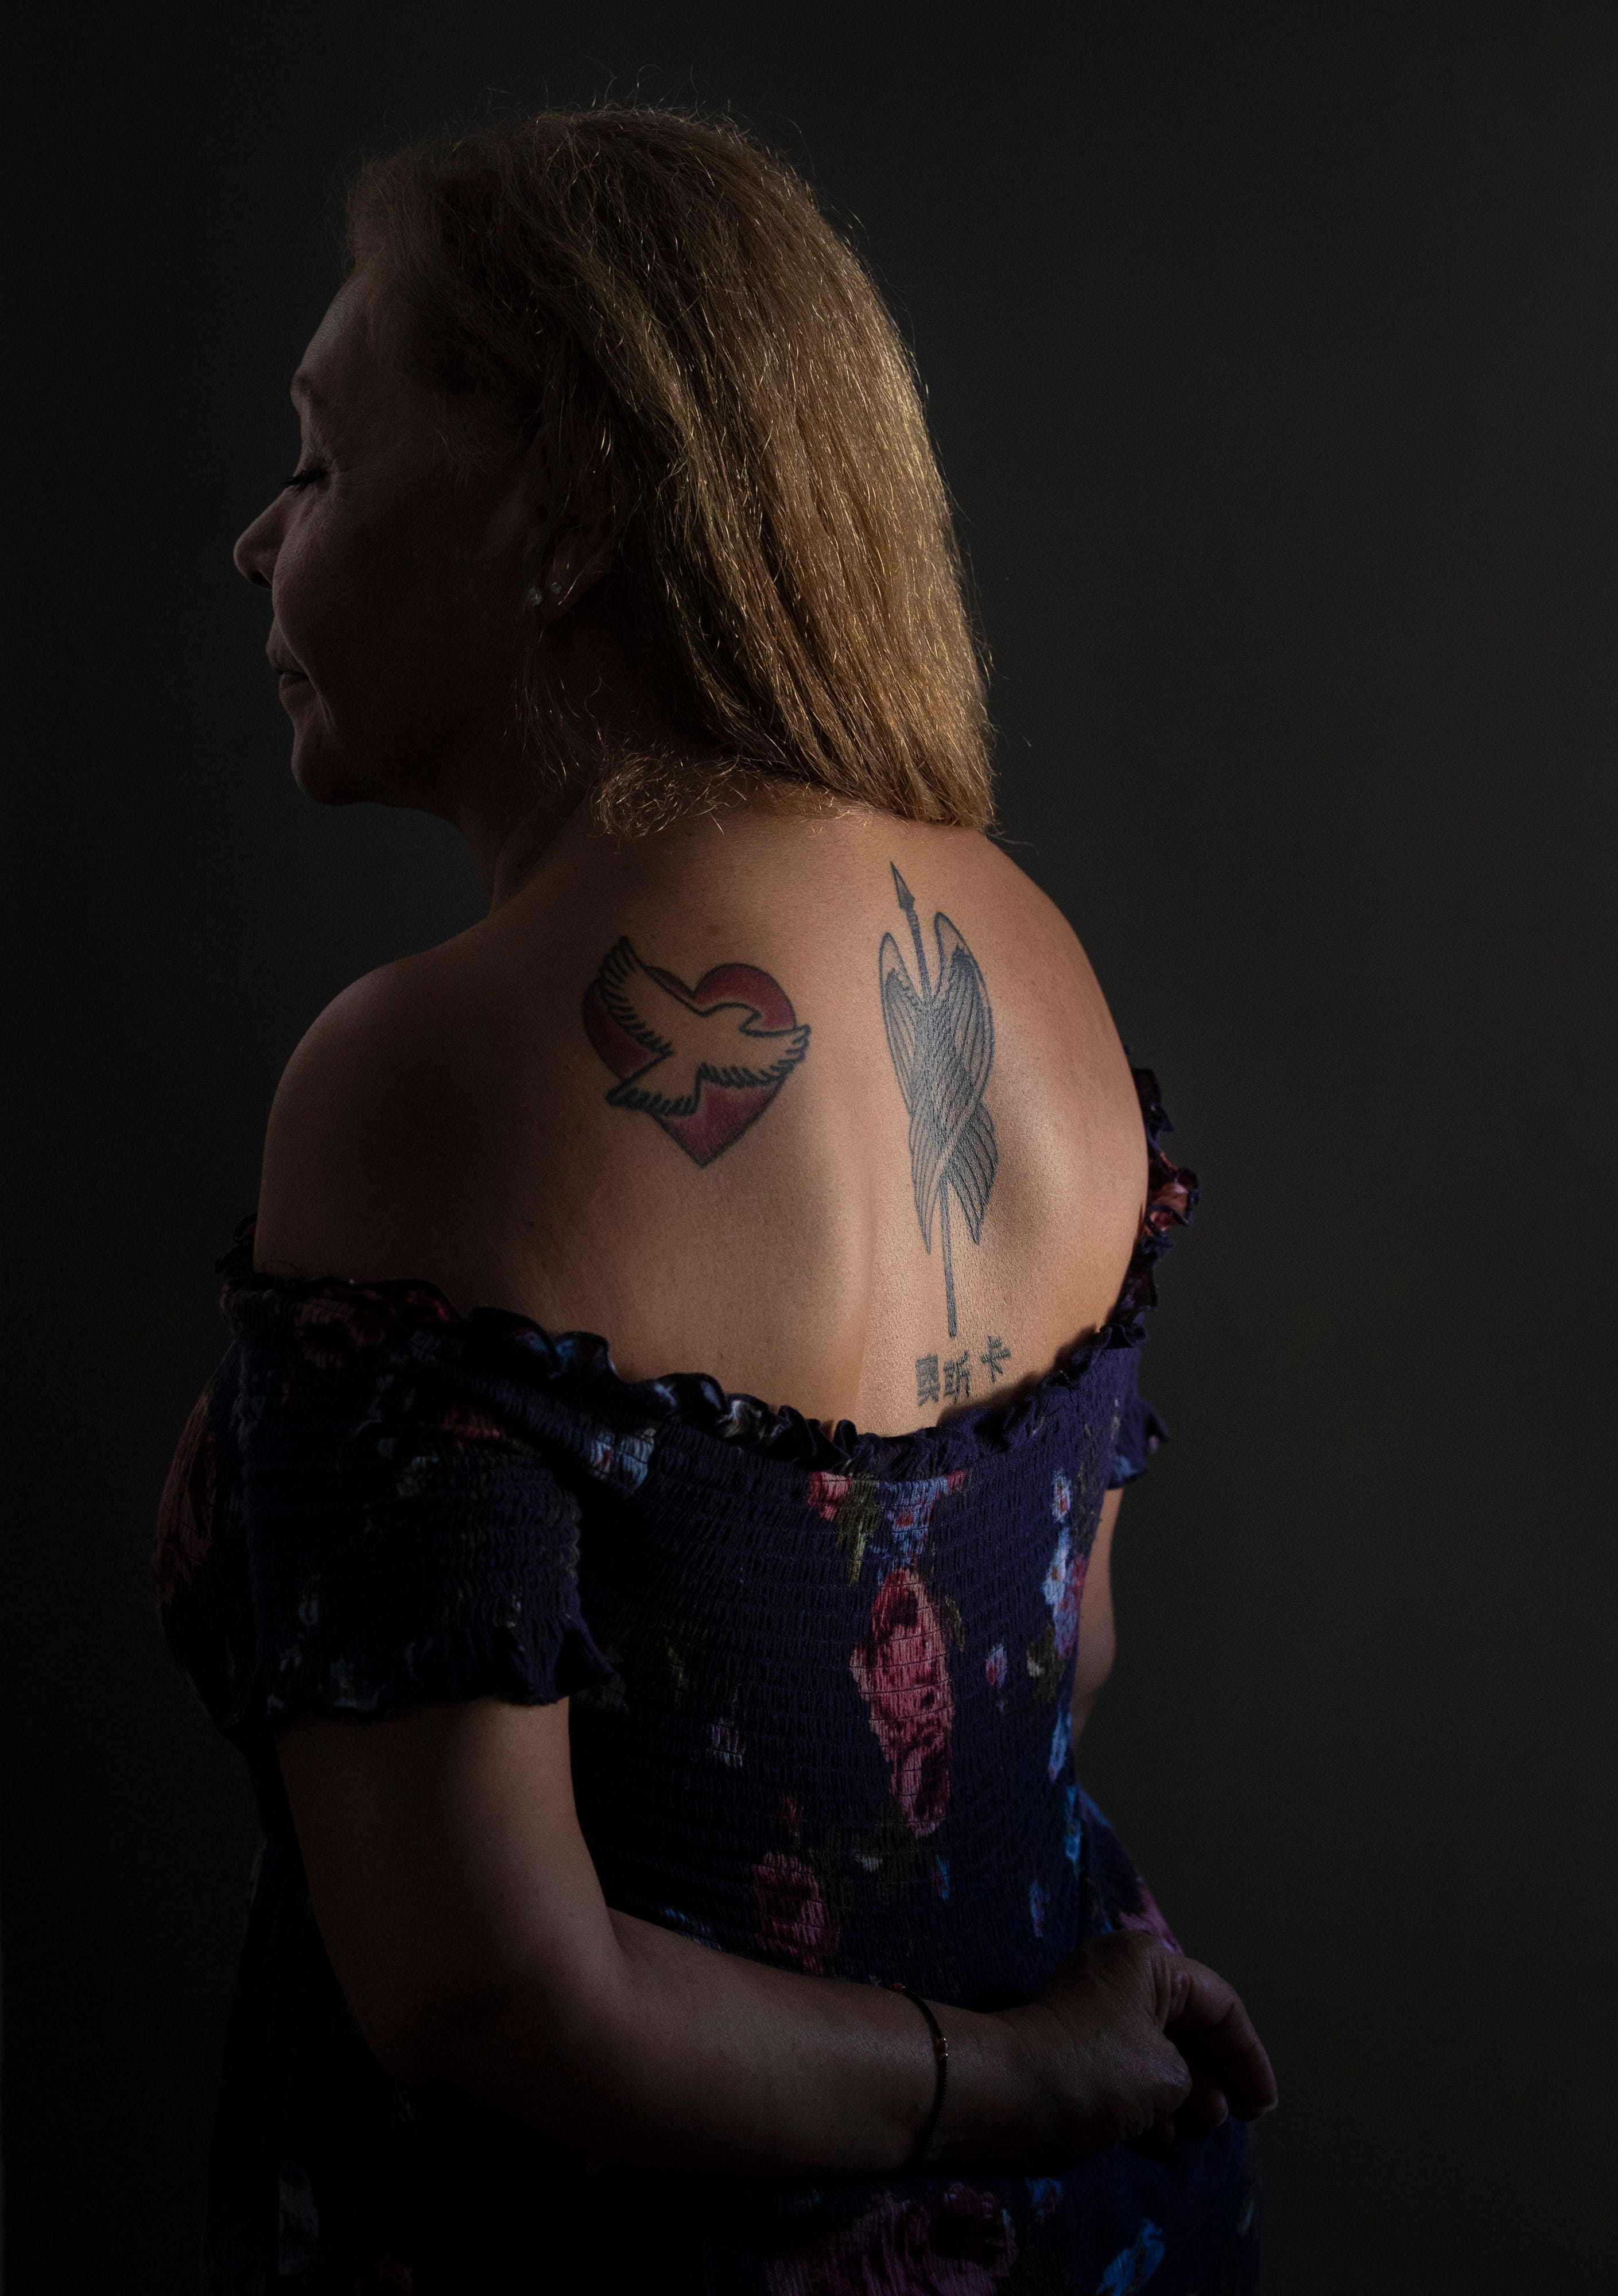 Carmen Macias, 62, got a tattoo in the center of her upper back to honor her son, Oscar, who vanished in 2014 after one mistake trapped him in a drug cartel's web.